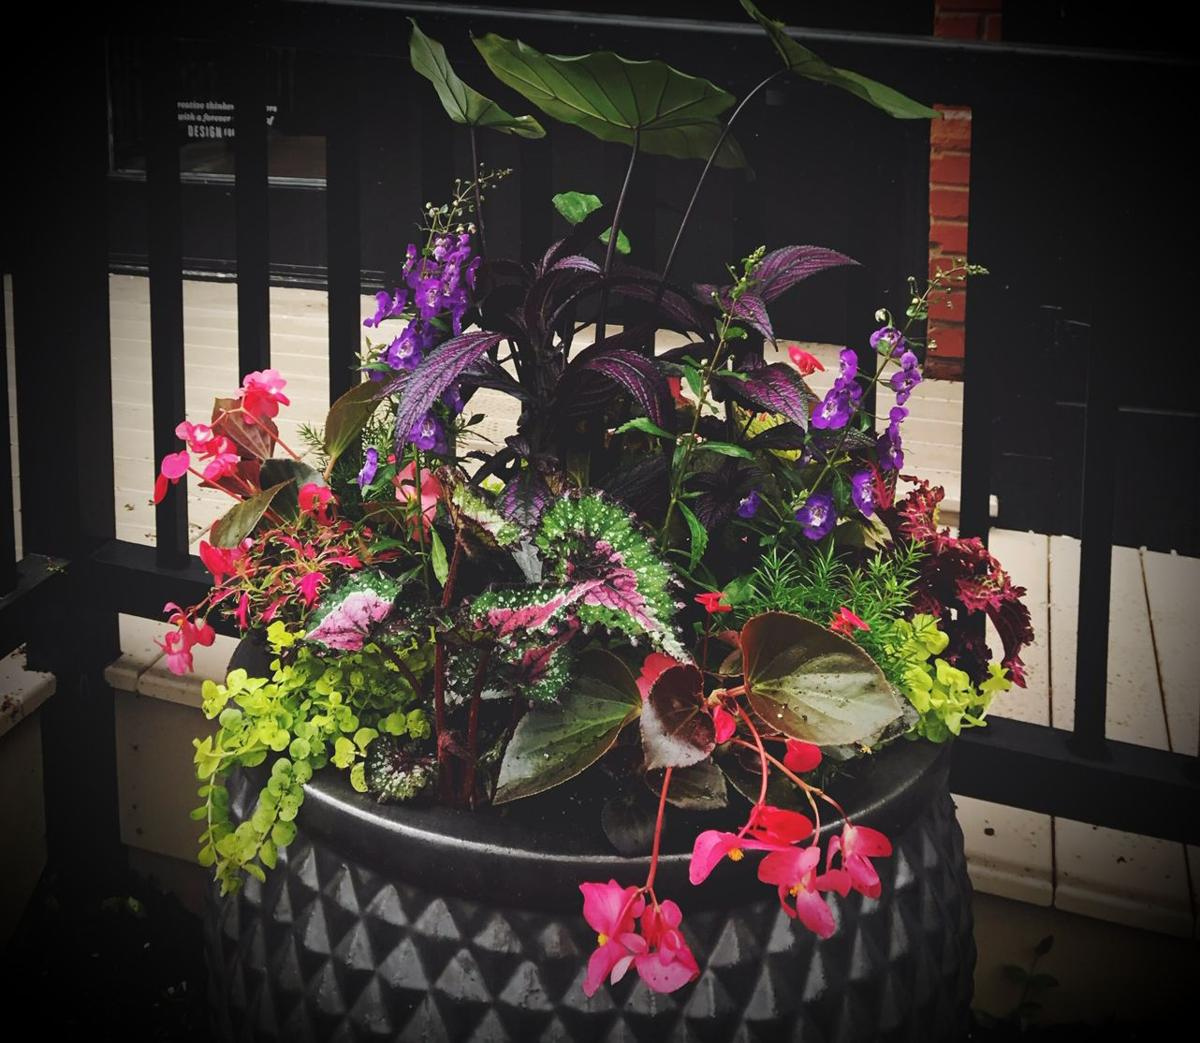 22 tips to take your container garden from Grimm to Narnia | Home + Zinnia Garden Pot Designs Html on